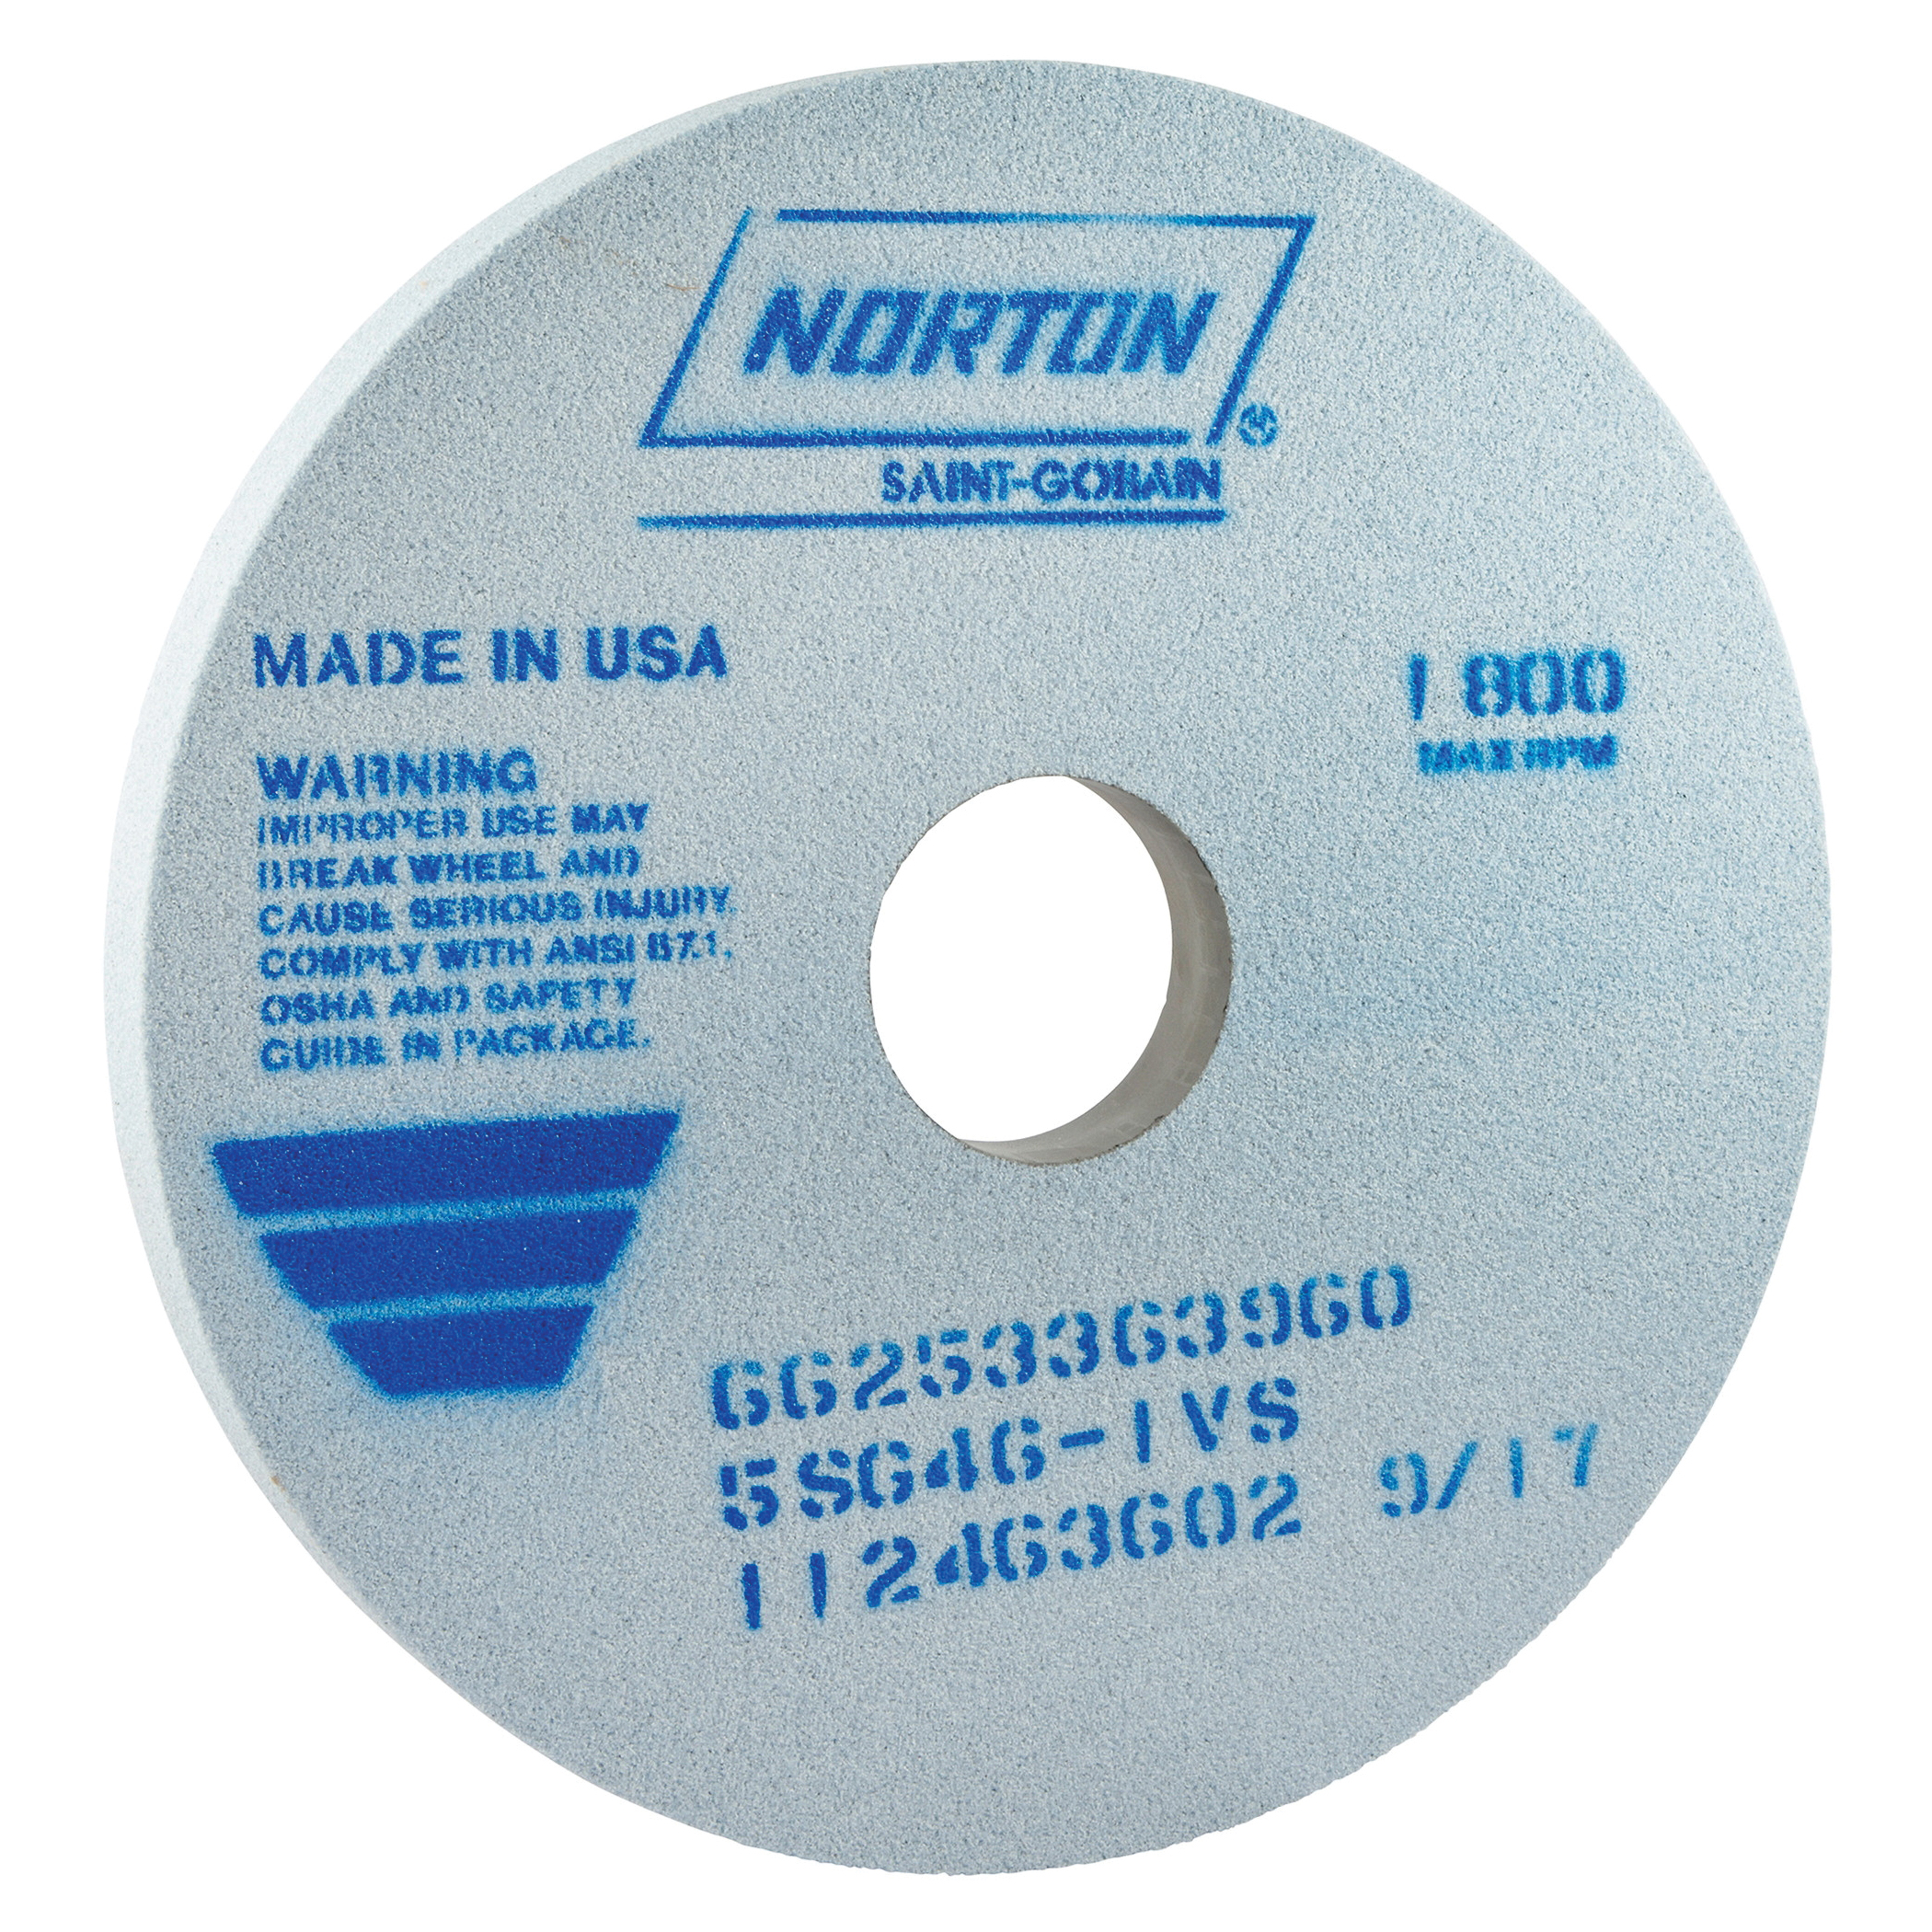 Norton® 66253363960 5SG Straight Toolroom Wheel, 14 in Dia x 1 in THK, 3 in Center Hole, 46 Grit, Ceramic Alumina/Friable Aluminum Oxide Abrasive